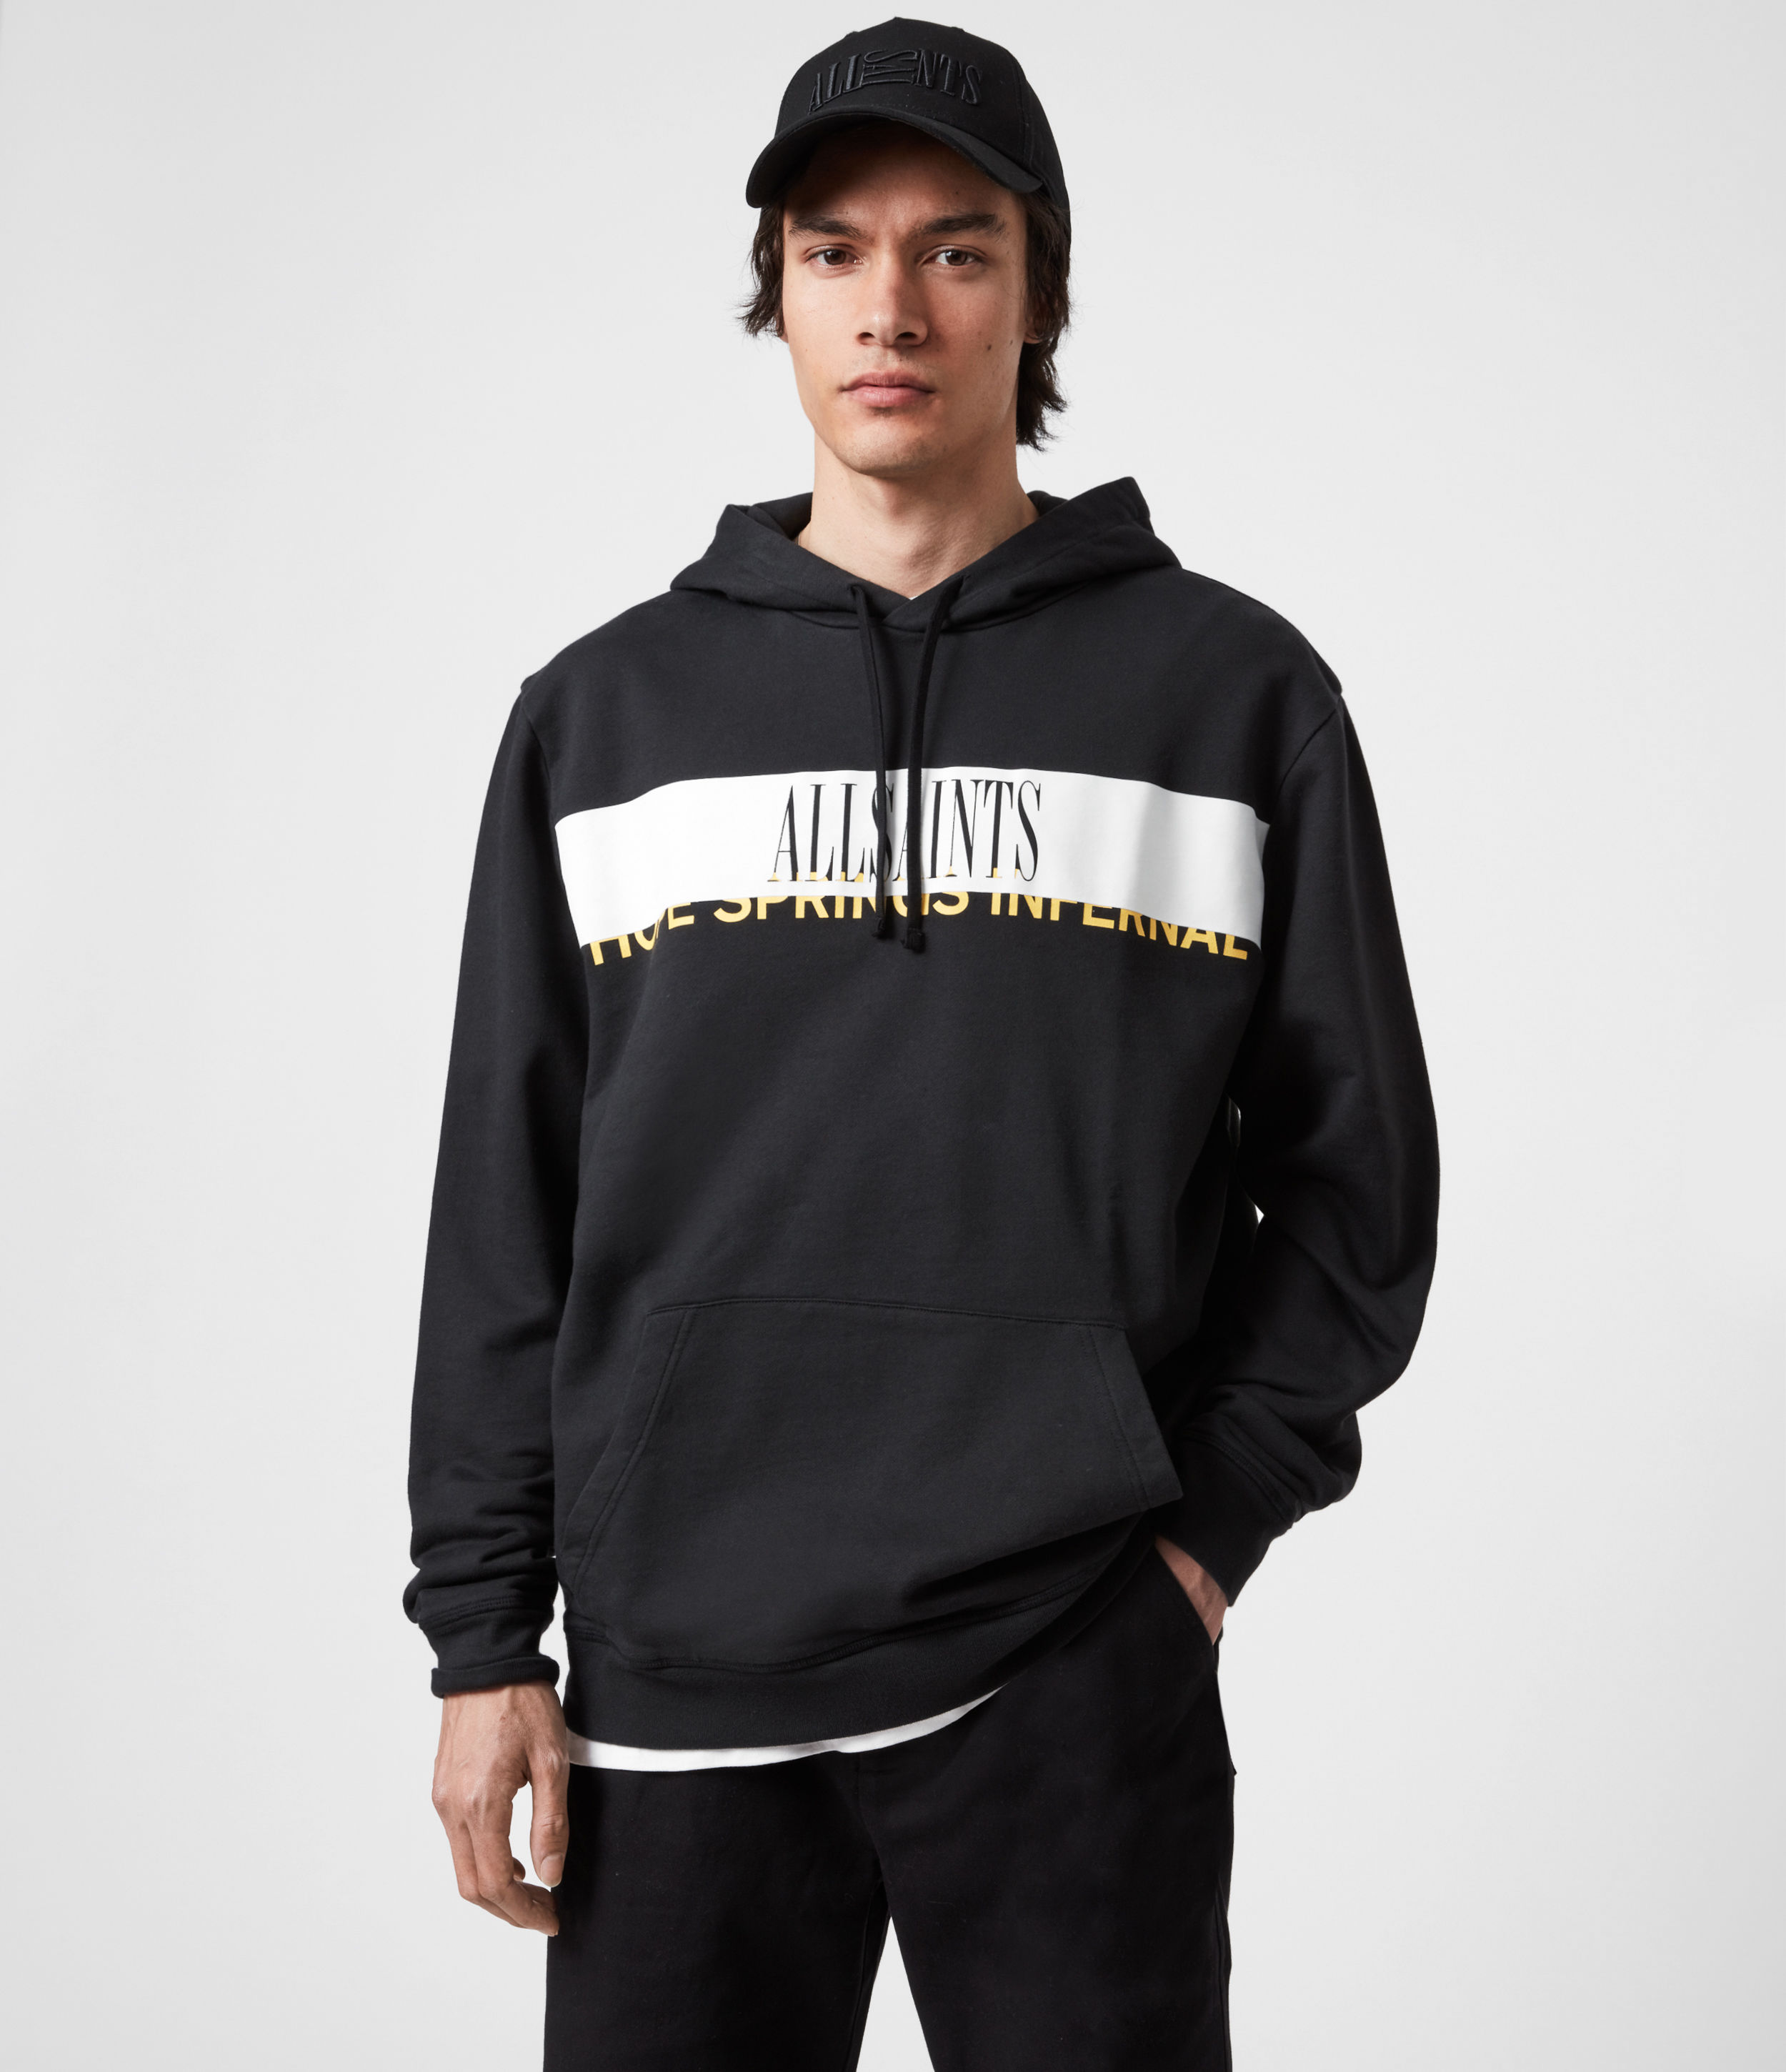 AllSaints Men's Cotton Graphic Print Feica Pullover Hoodie, Black, White and Yellow, Size: S